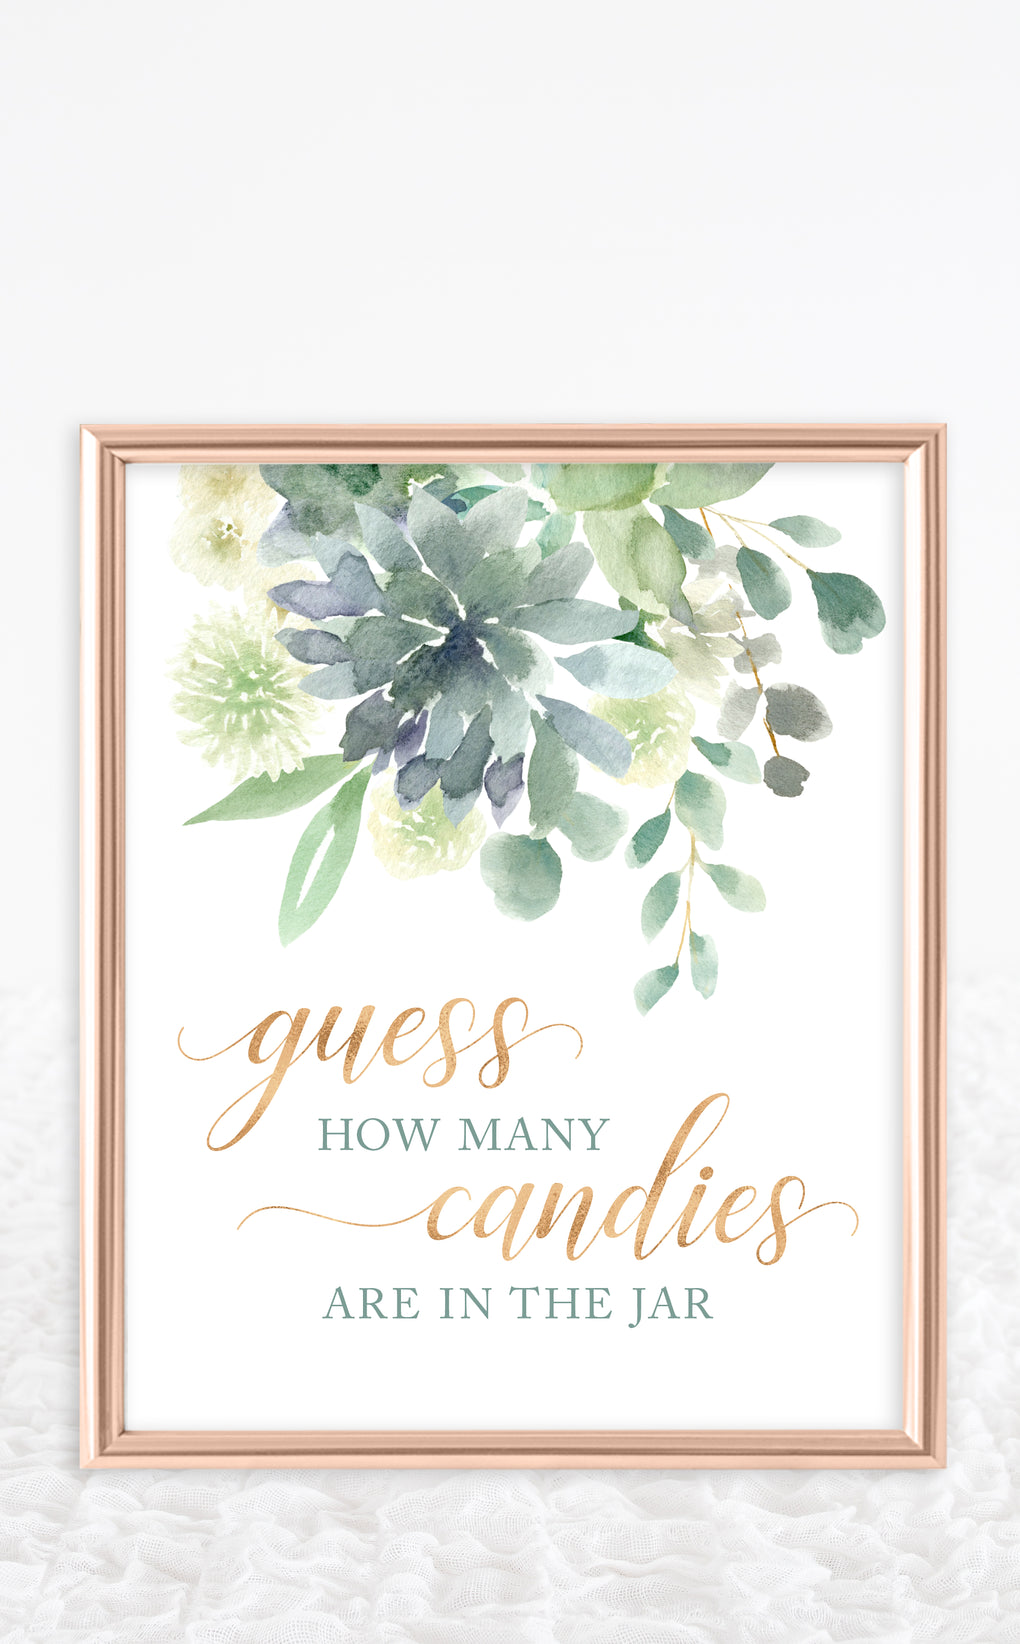 Frame showing succulent art work for guess how many candies are in the jar baby shower game